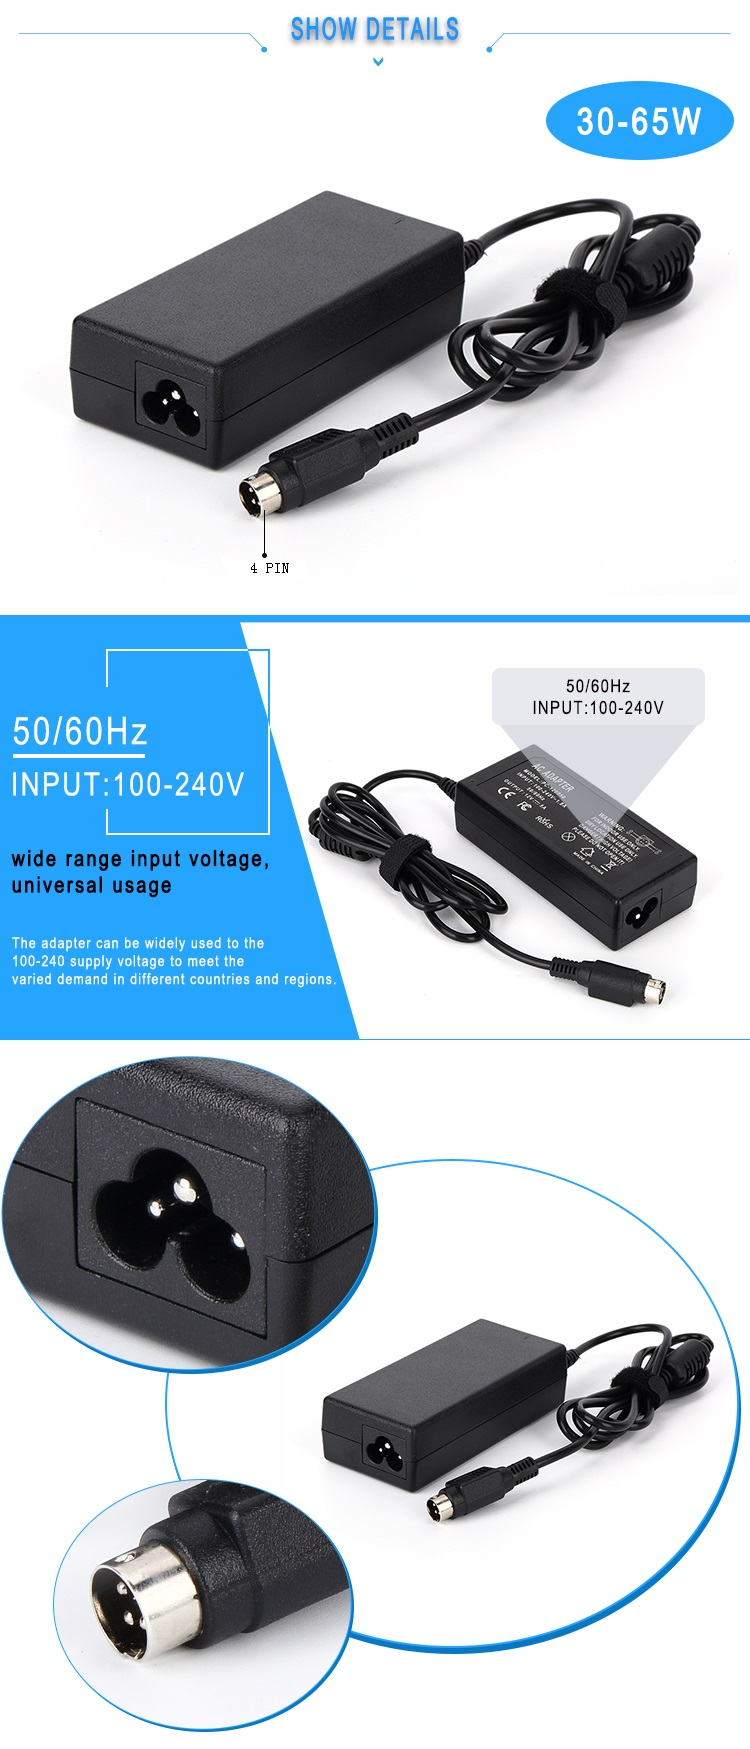 24V Siwtching Power Supply